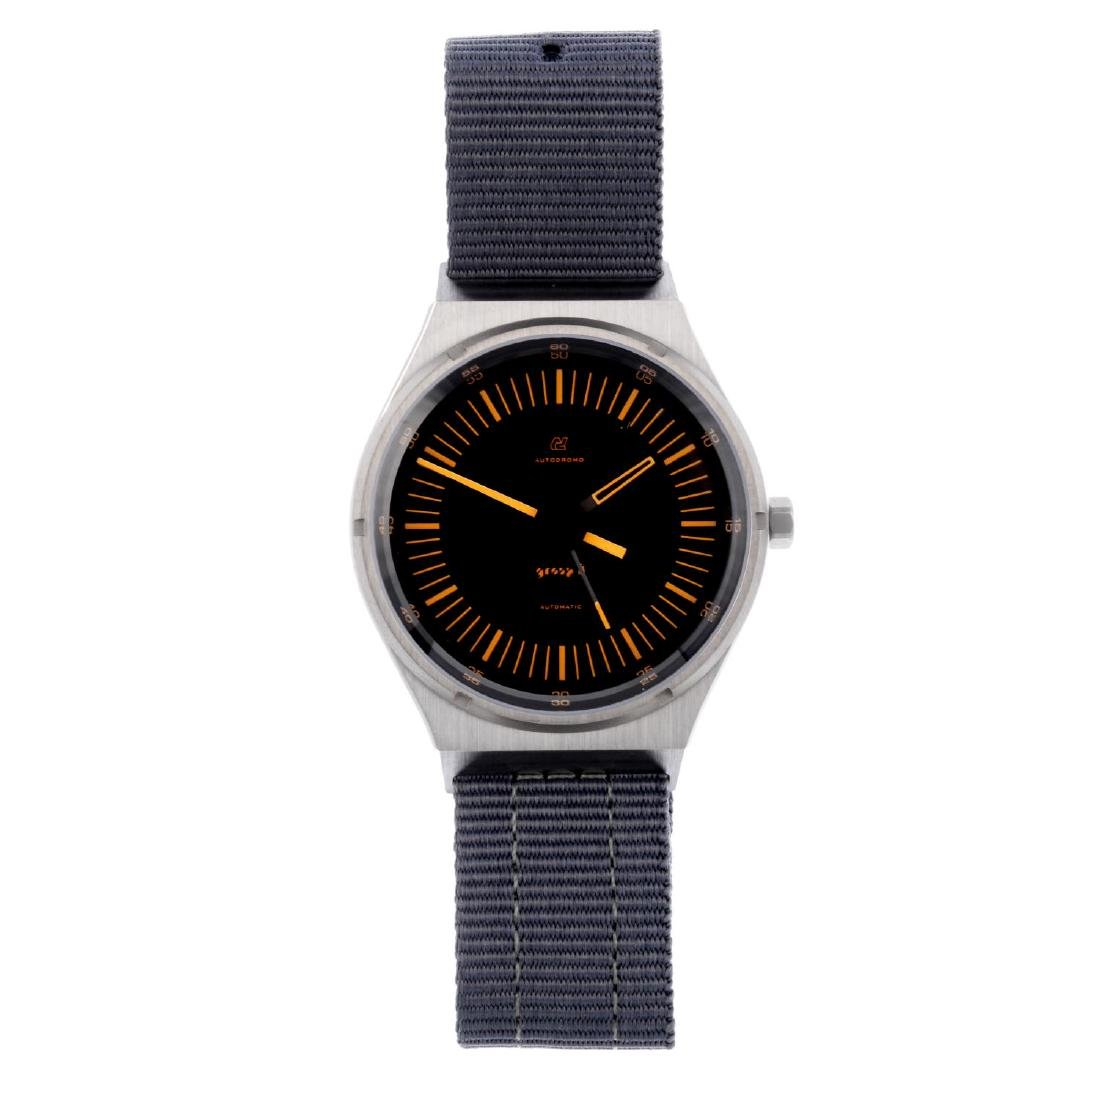 AUTODROMO - a gentleman's Group B wrist watch.